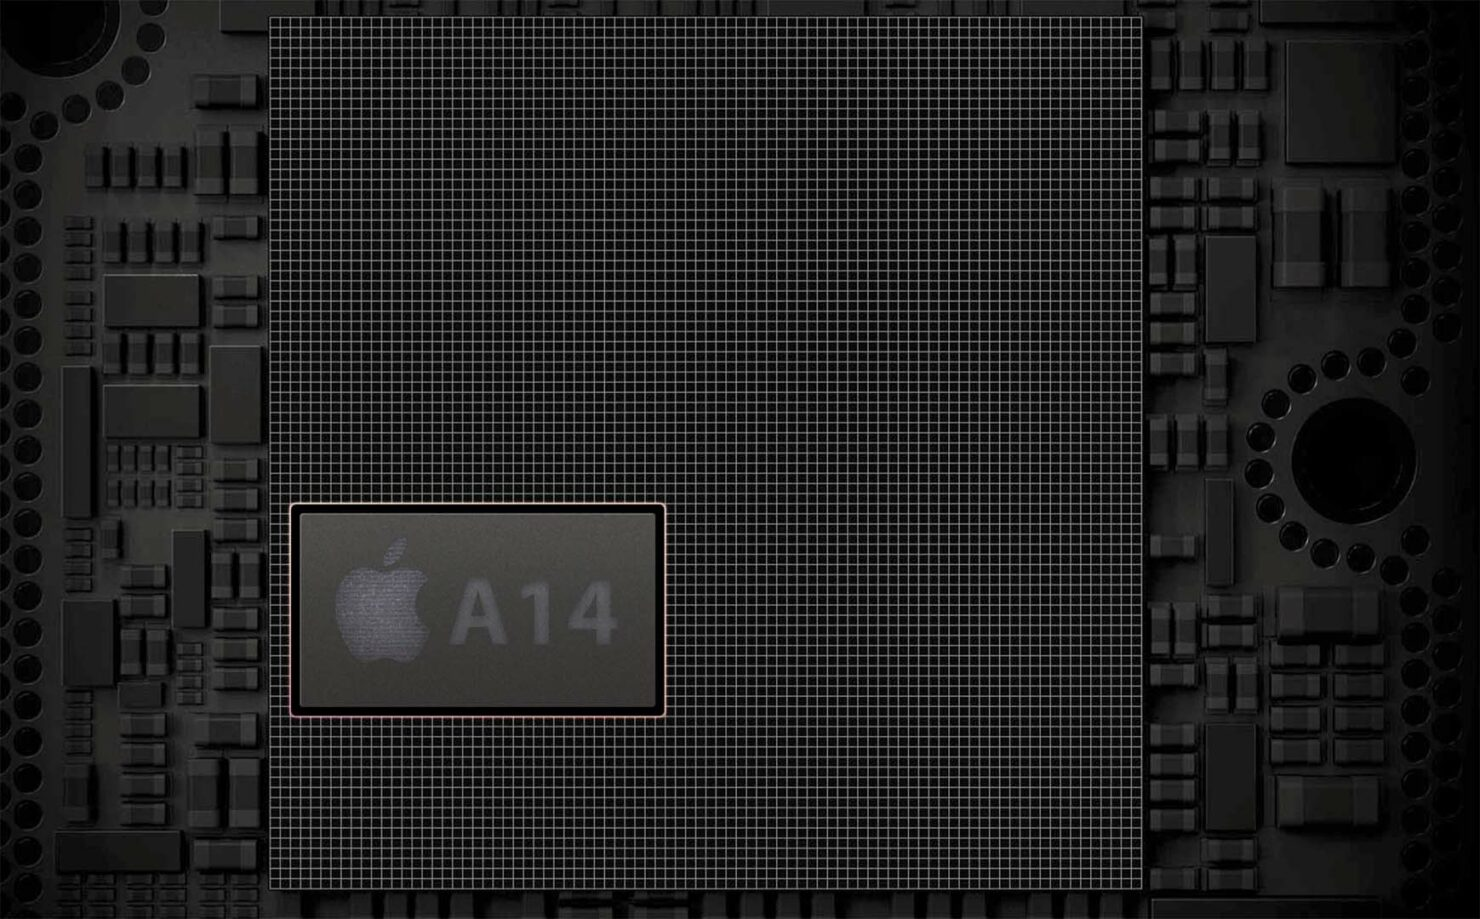 Apple A14 Bionic Chips Expected to See no Slowdown in Volume Production by TSMC Despite Ongoing Pandemic